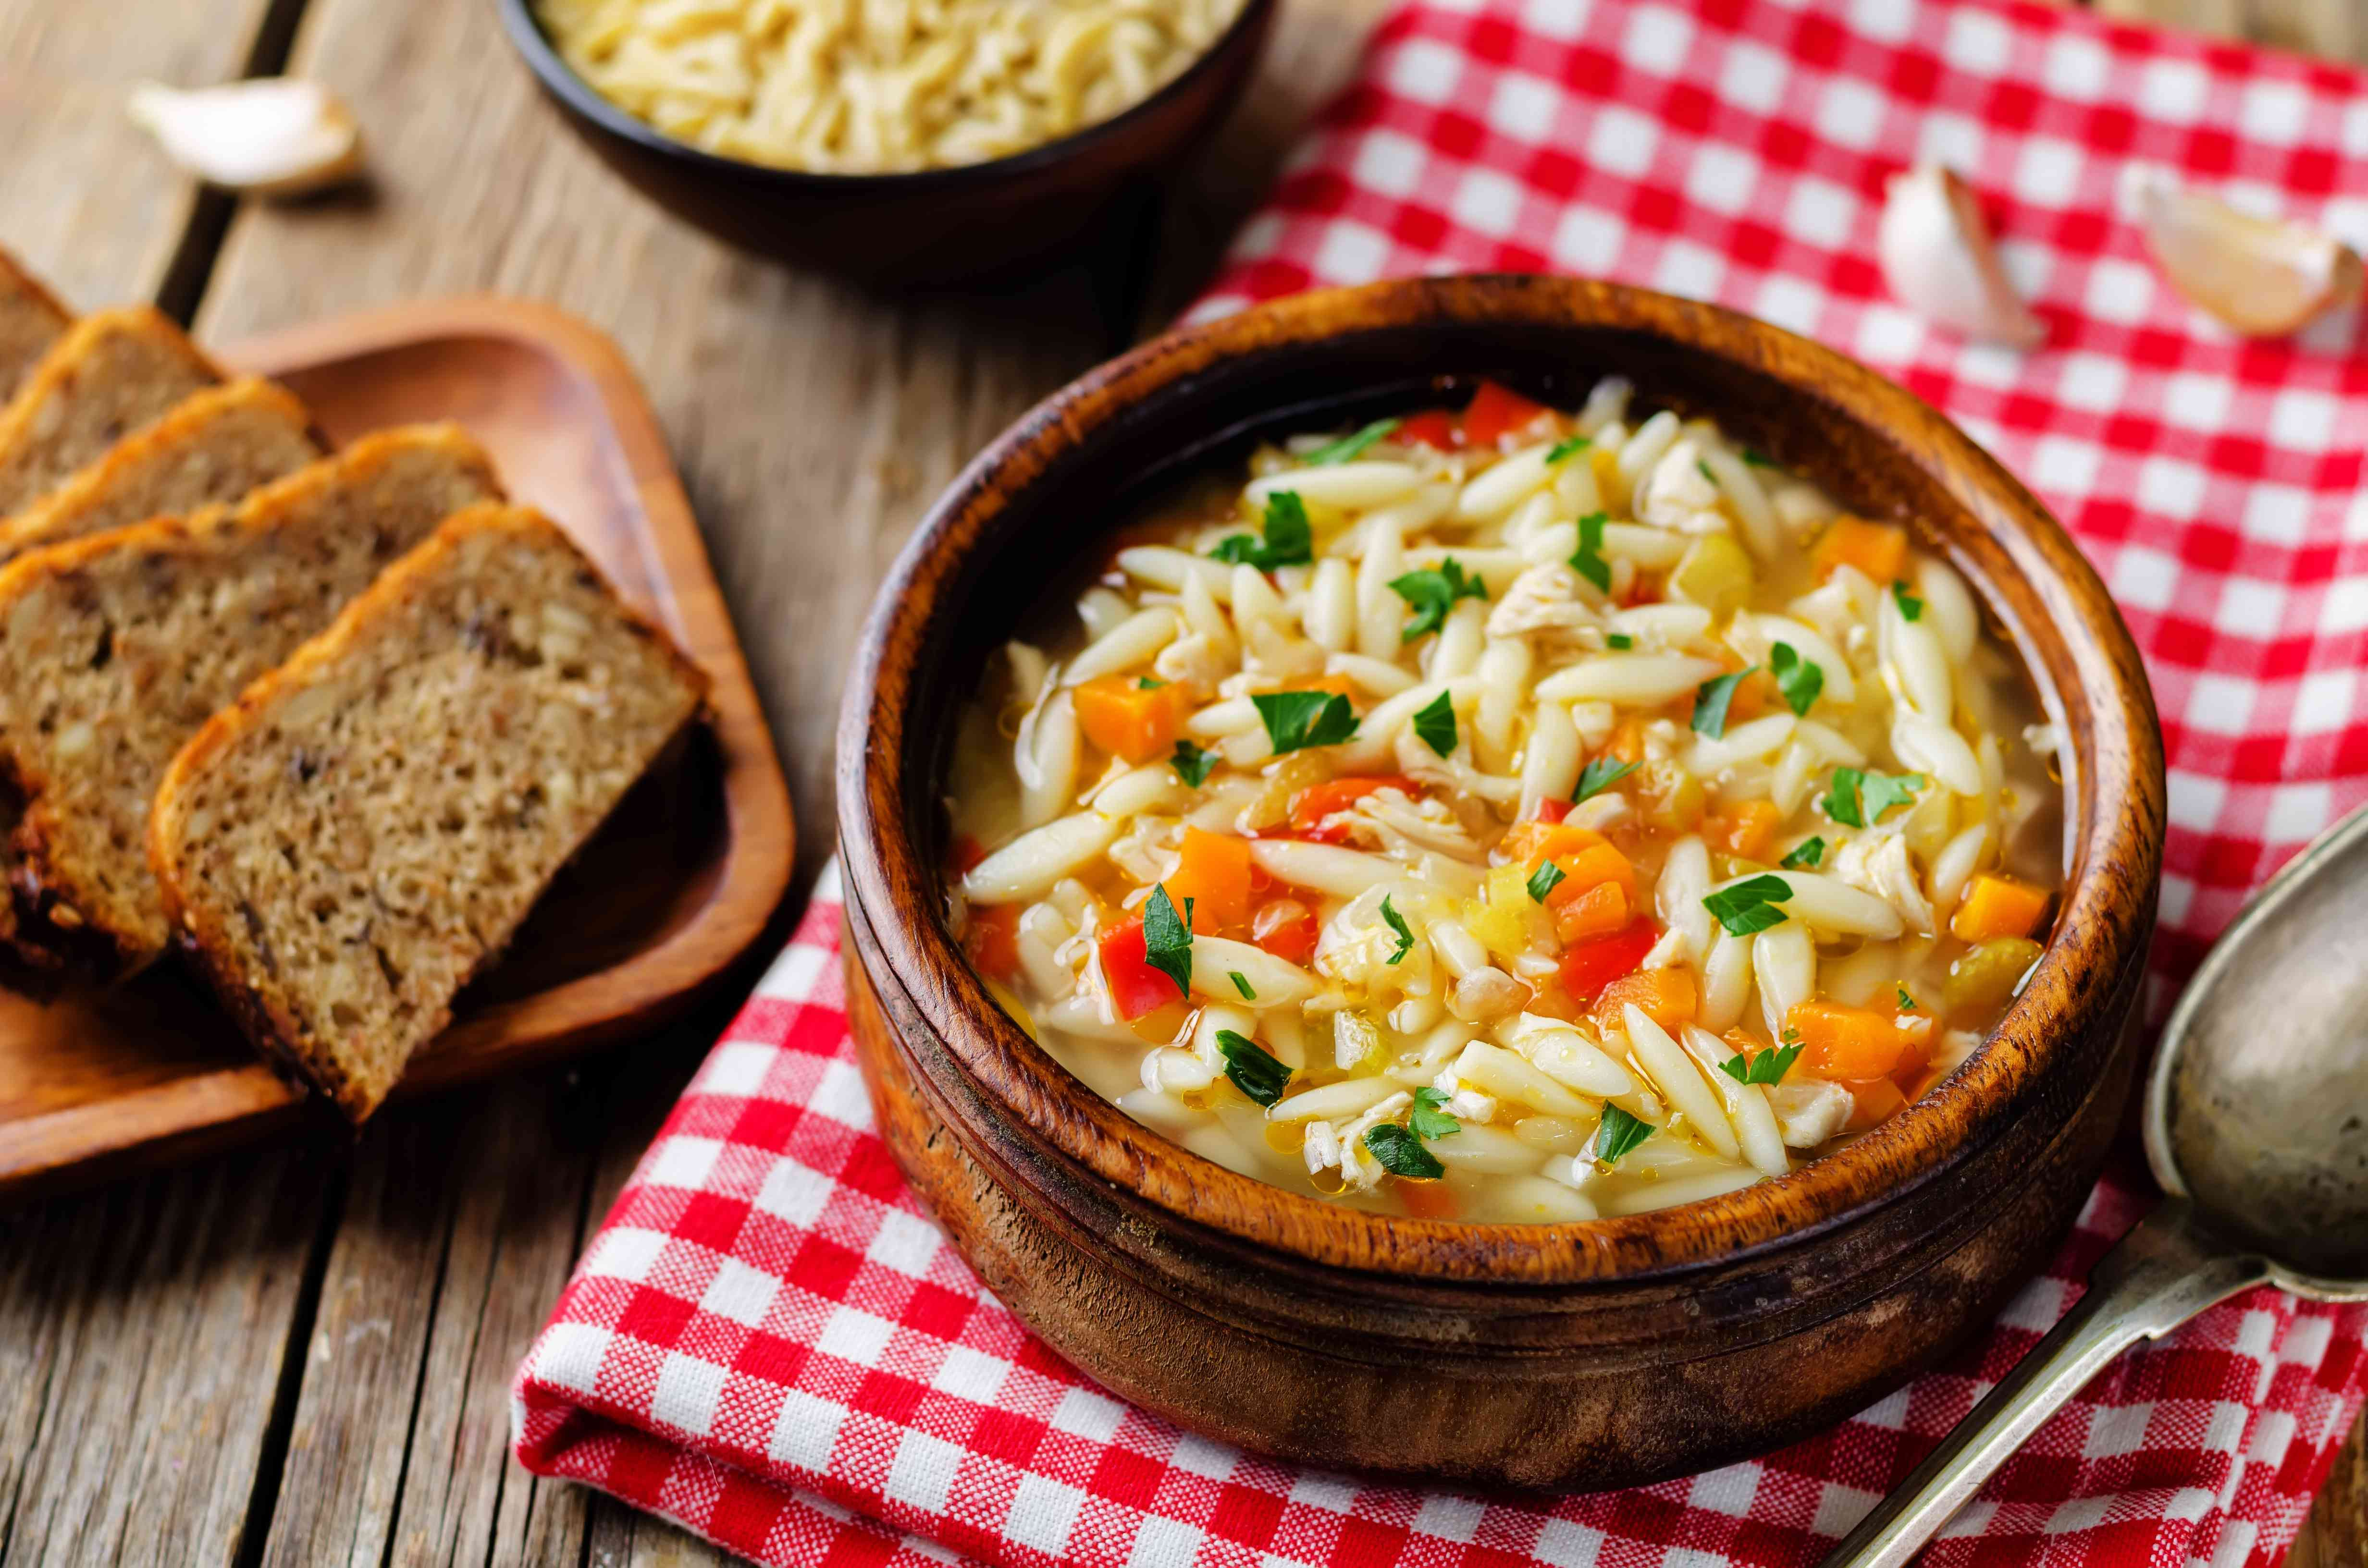 Turkey orzo vegetables soup with fresh rye bread slices